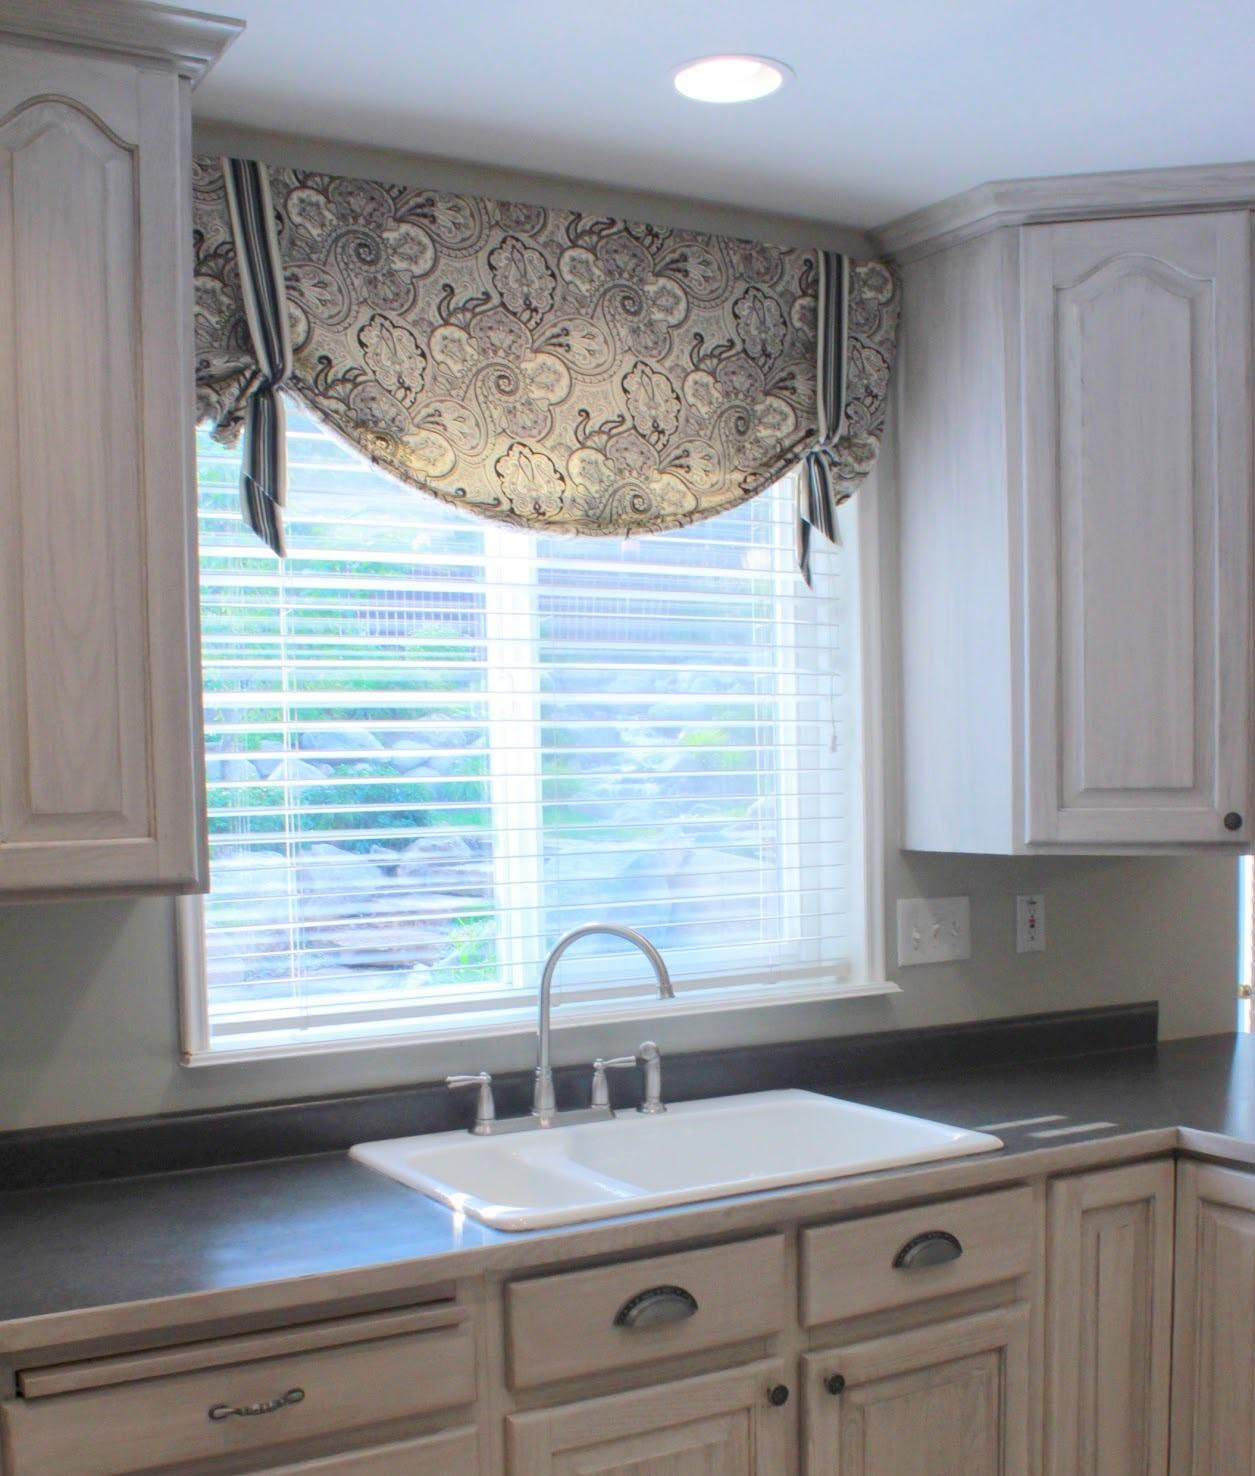 Merveilleux Kitchen Valances For Windows